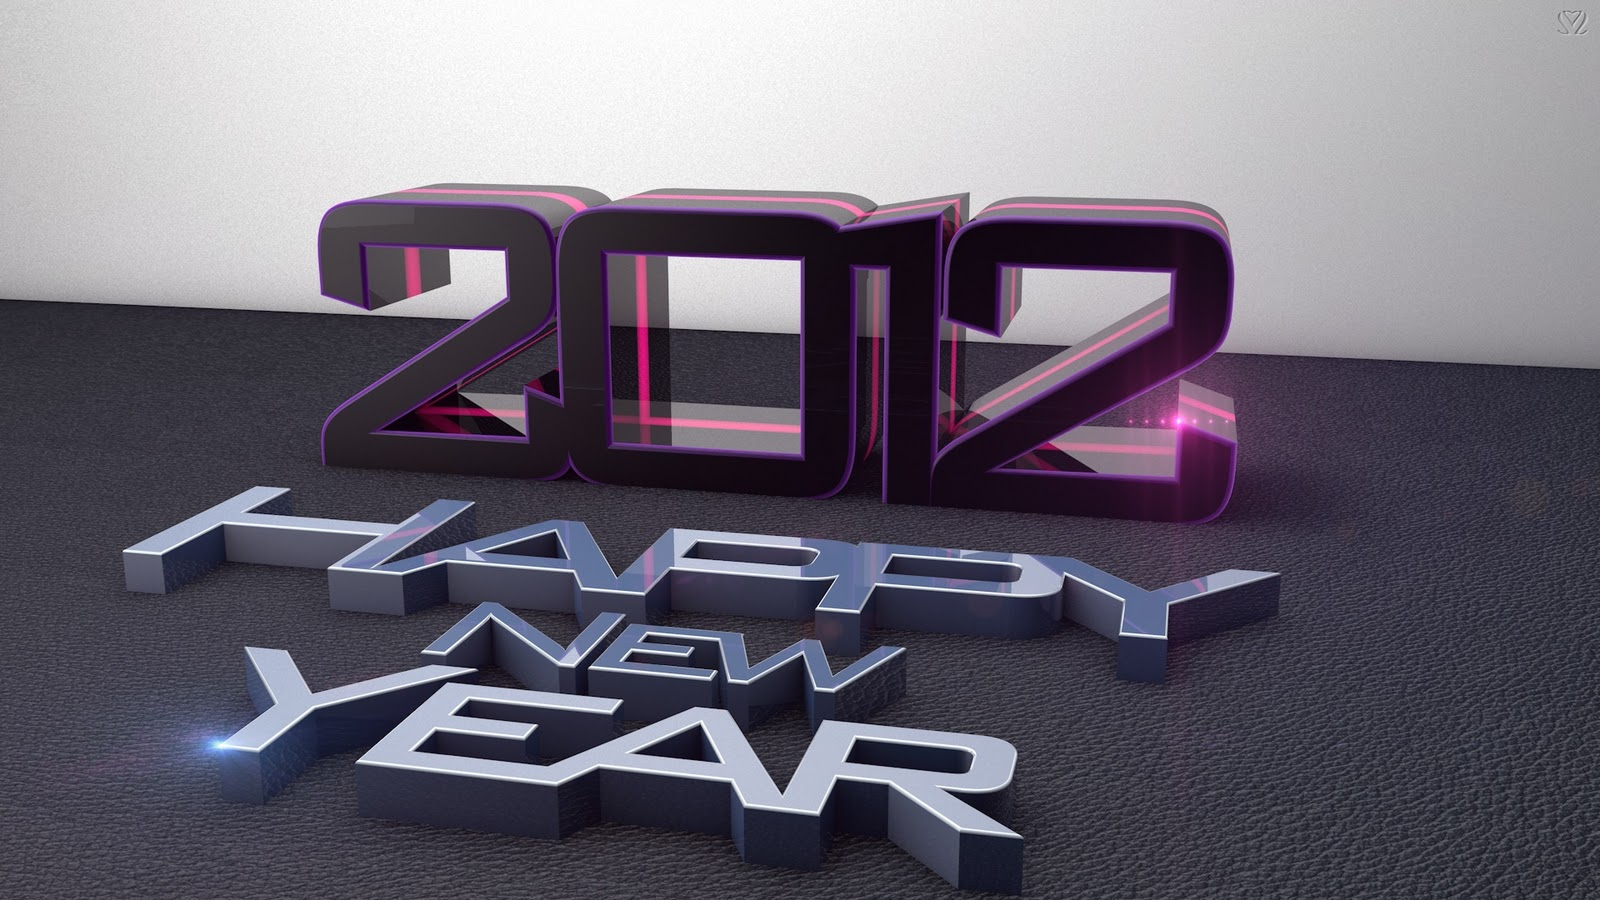 http://2.bp.blogspot.com/-OkSXbwAtmeI/Tv9MEX7x-6I/AAAAAAAAFmE/snvB6aJCgfg/s1600/happy_new_year_2012-1920x1080.jpg